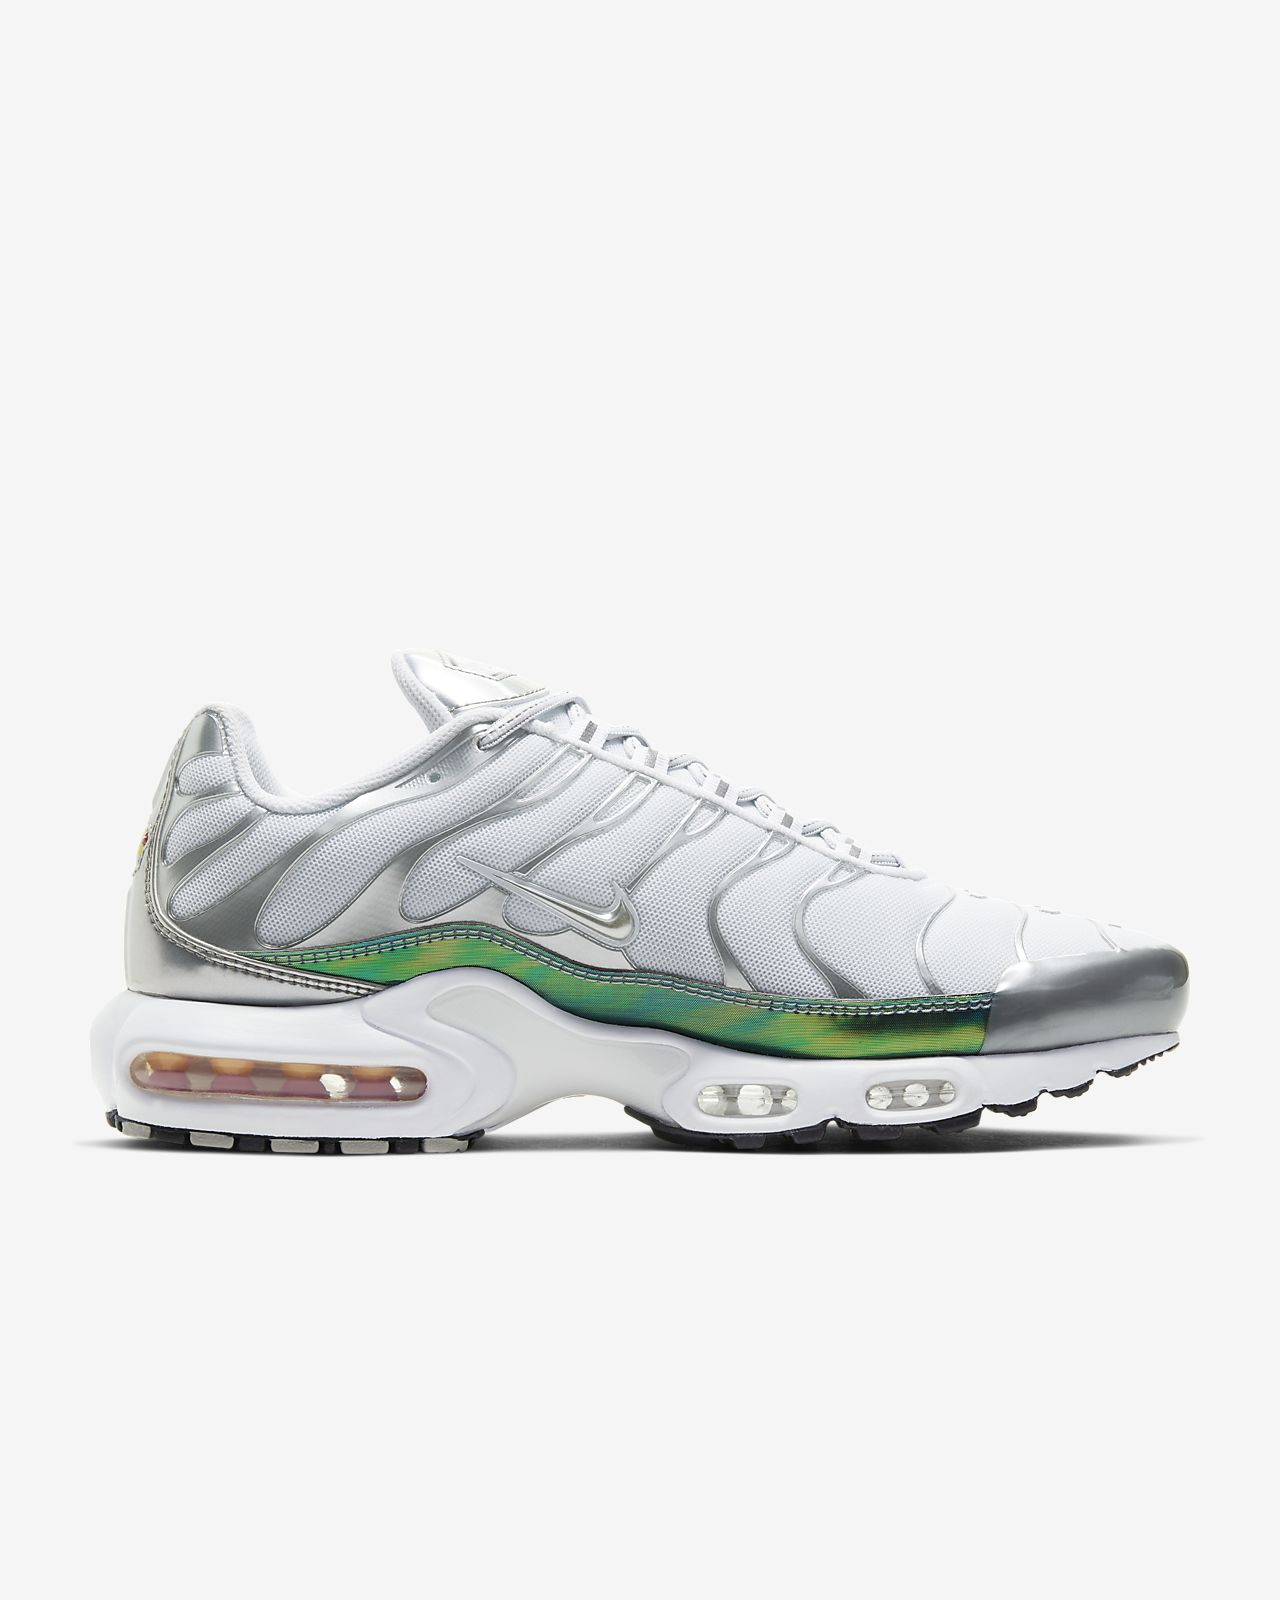 Herre Air Max Plus Sko. Nike NO